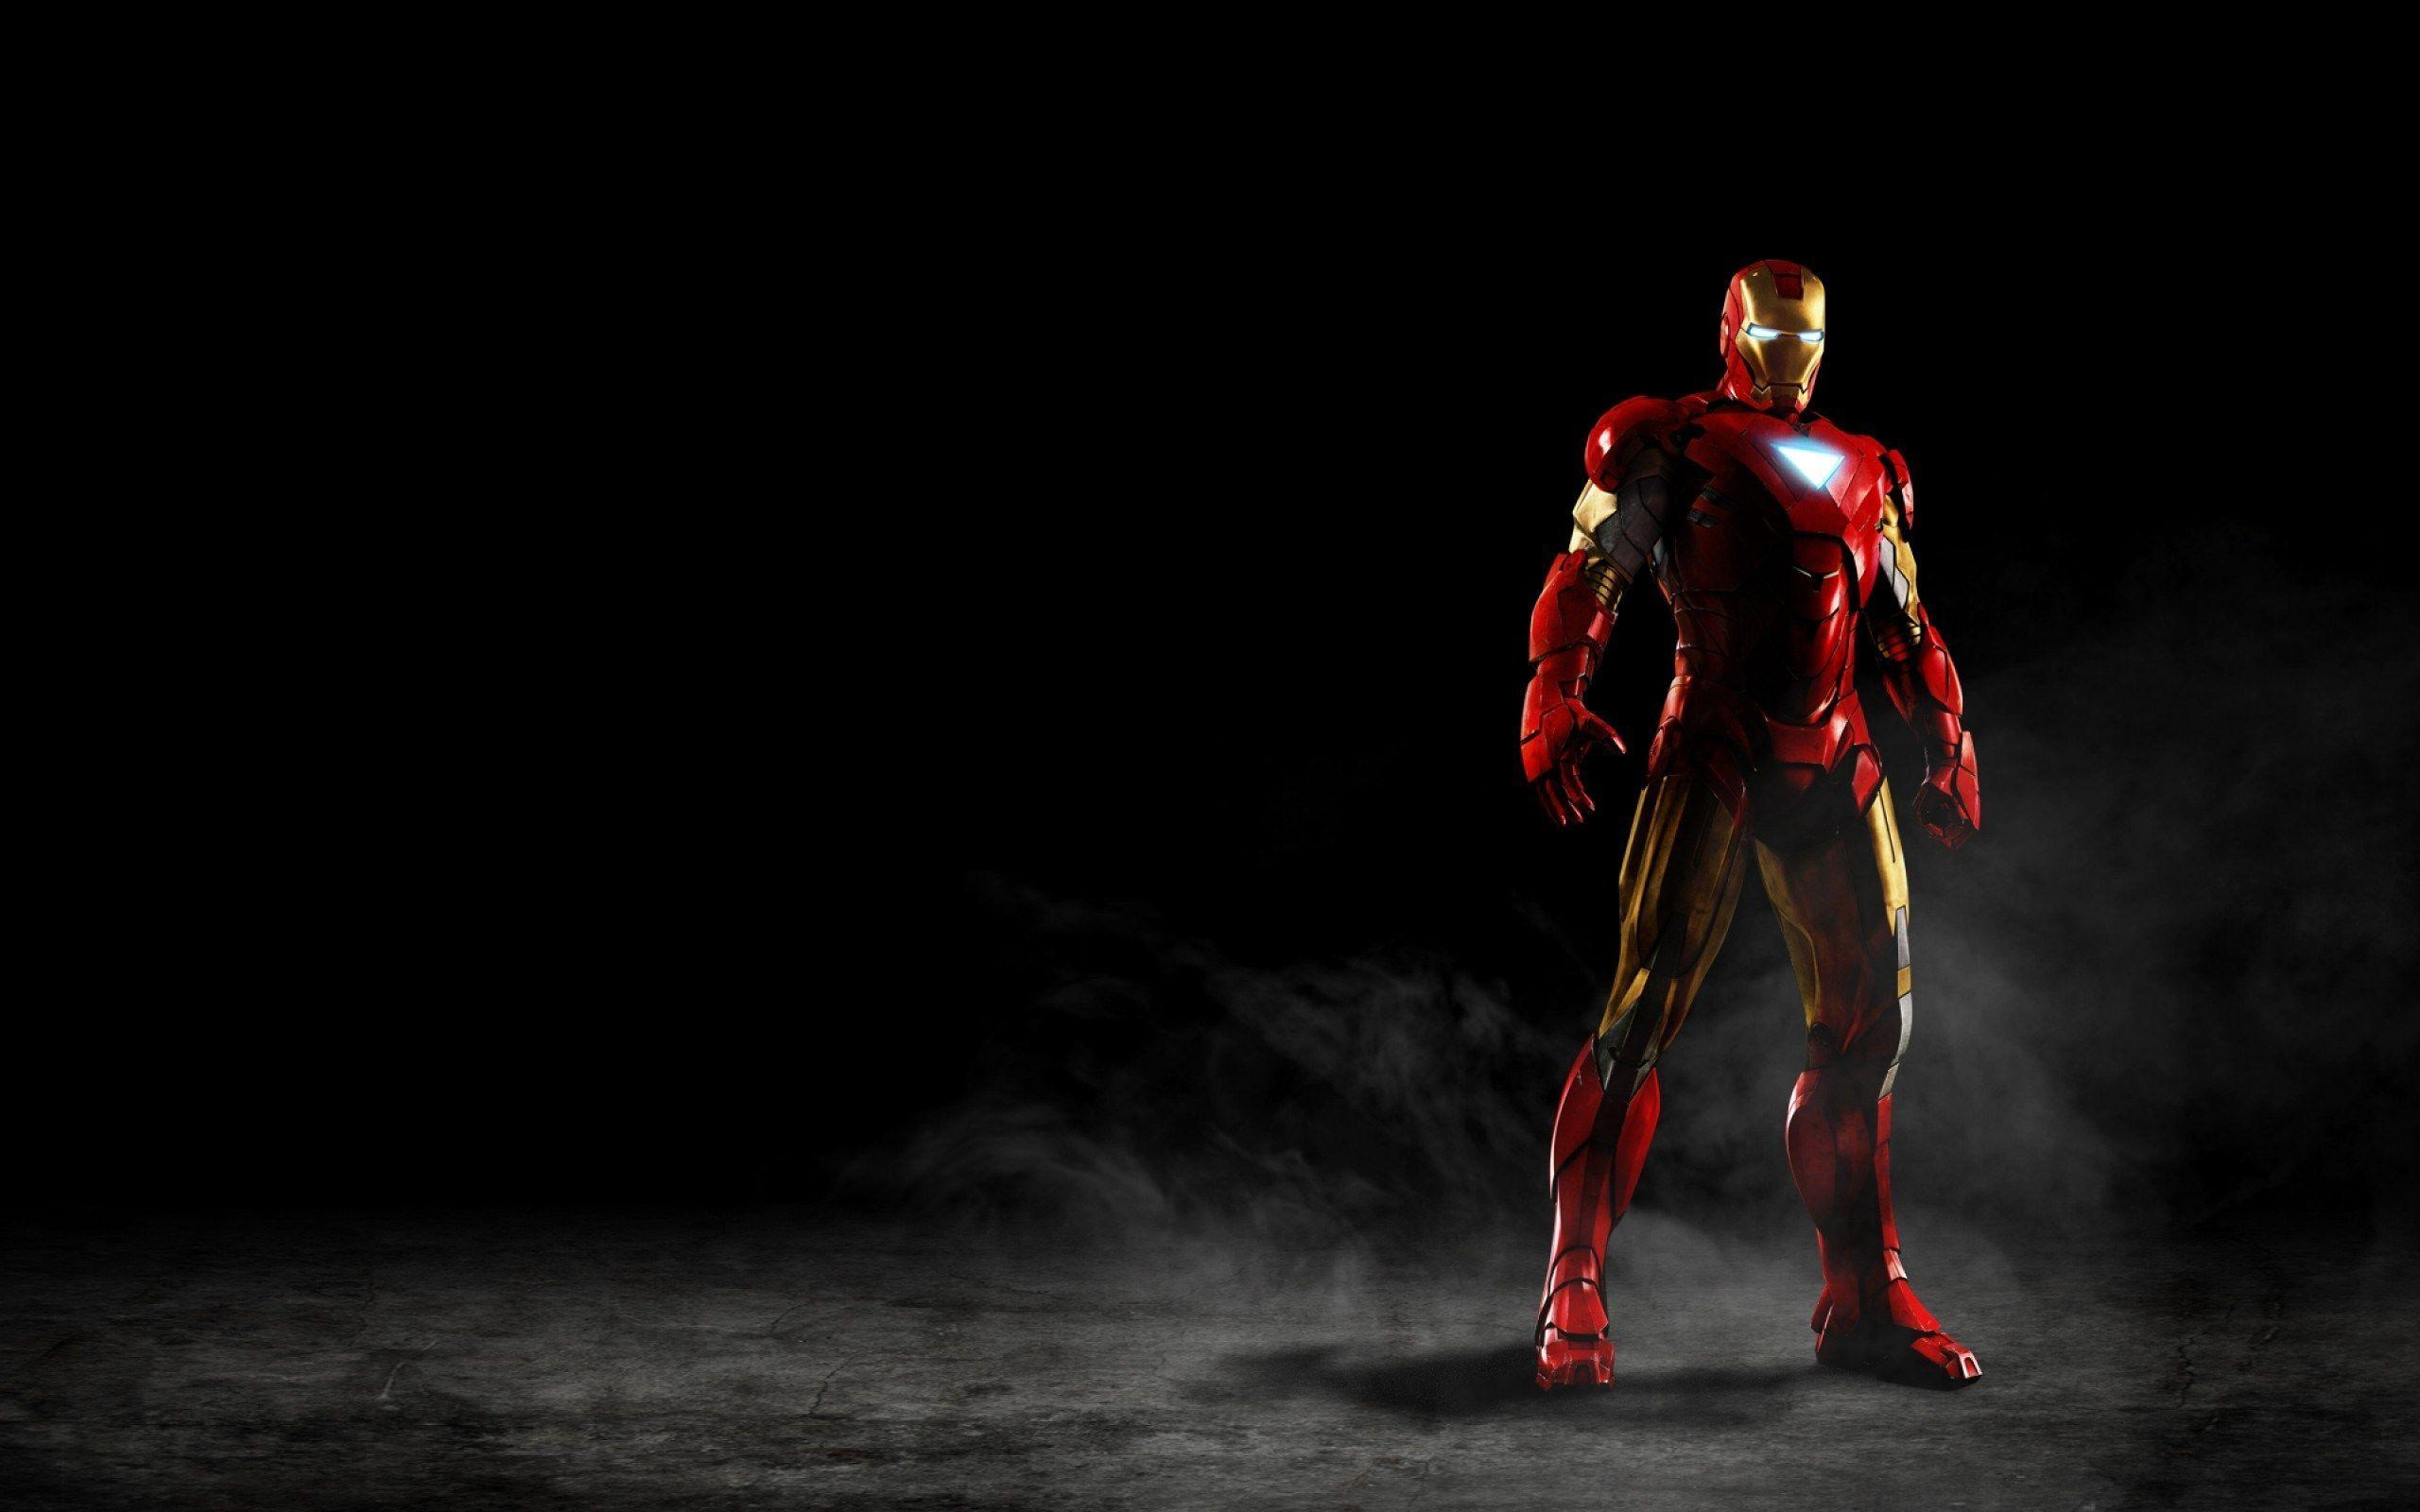 Widescreen Iron Man Hd Cave On Images In Full Pics Of Androids